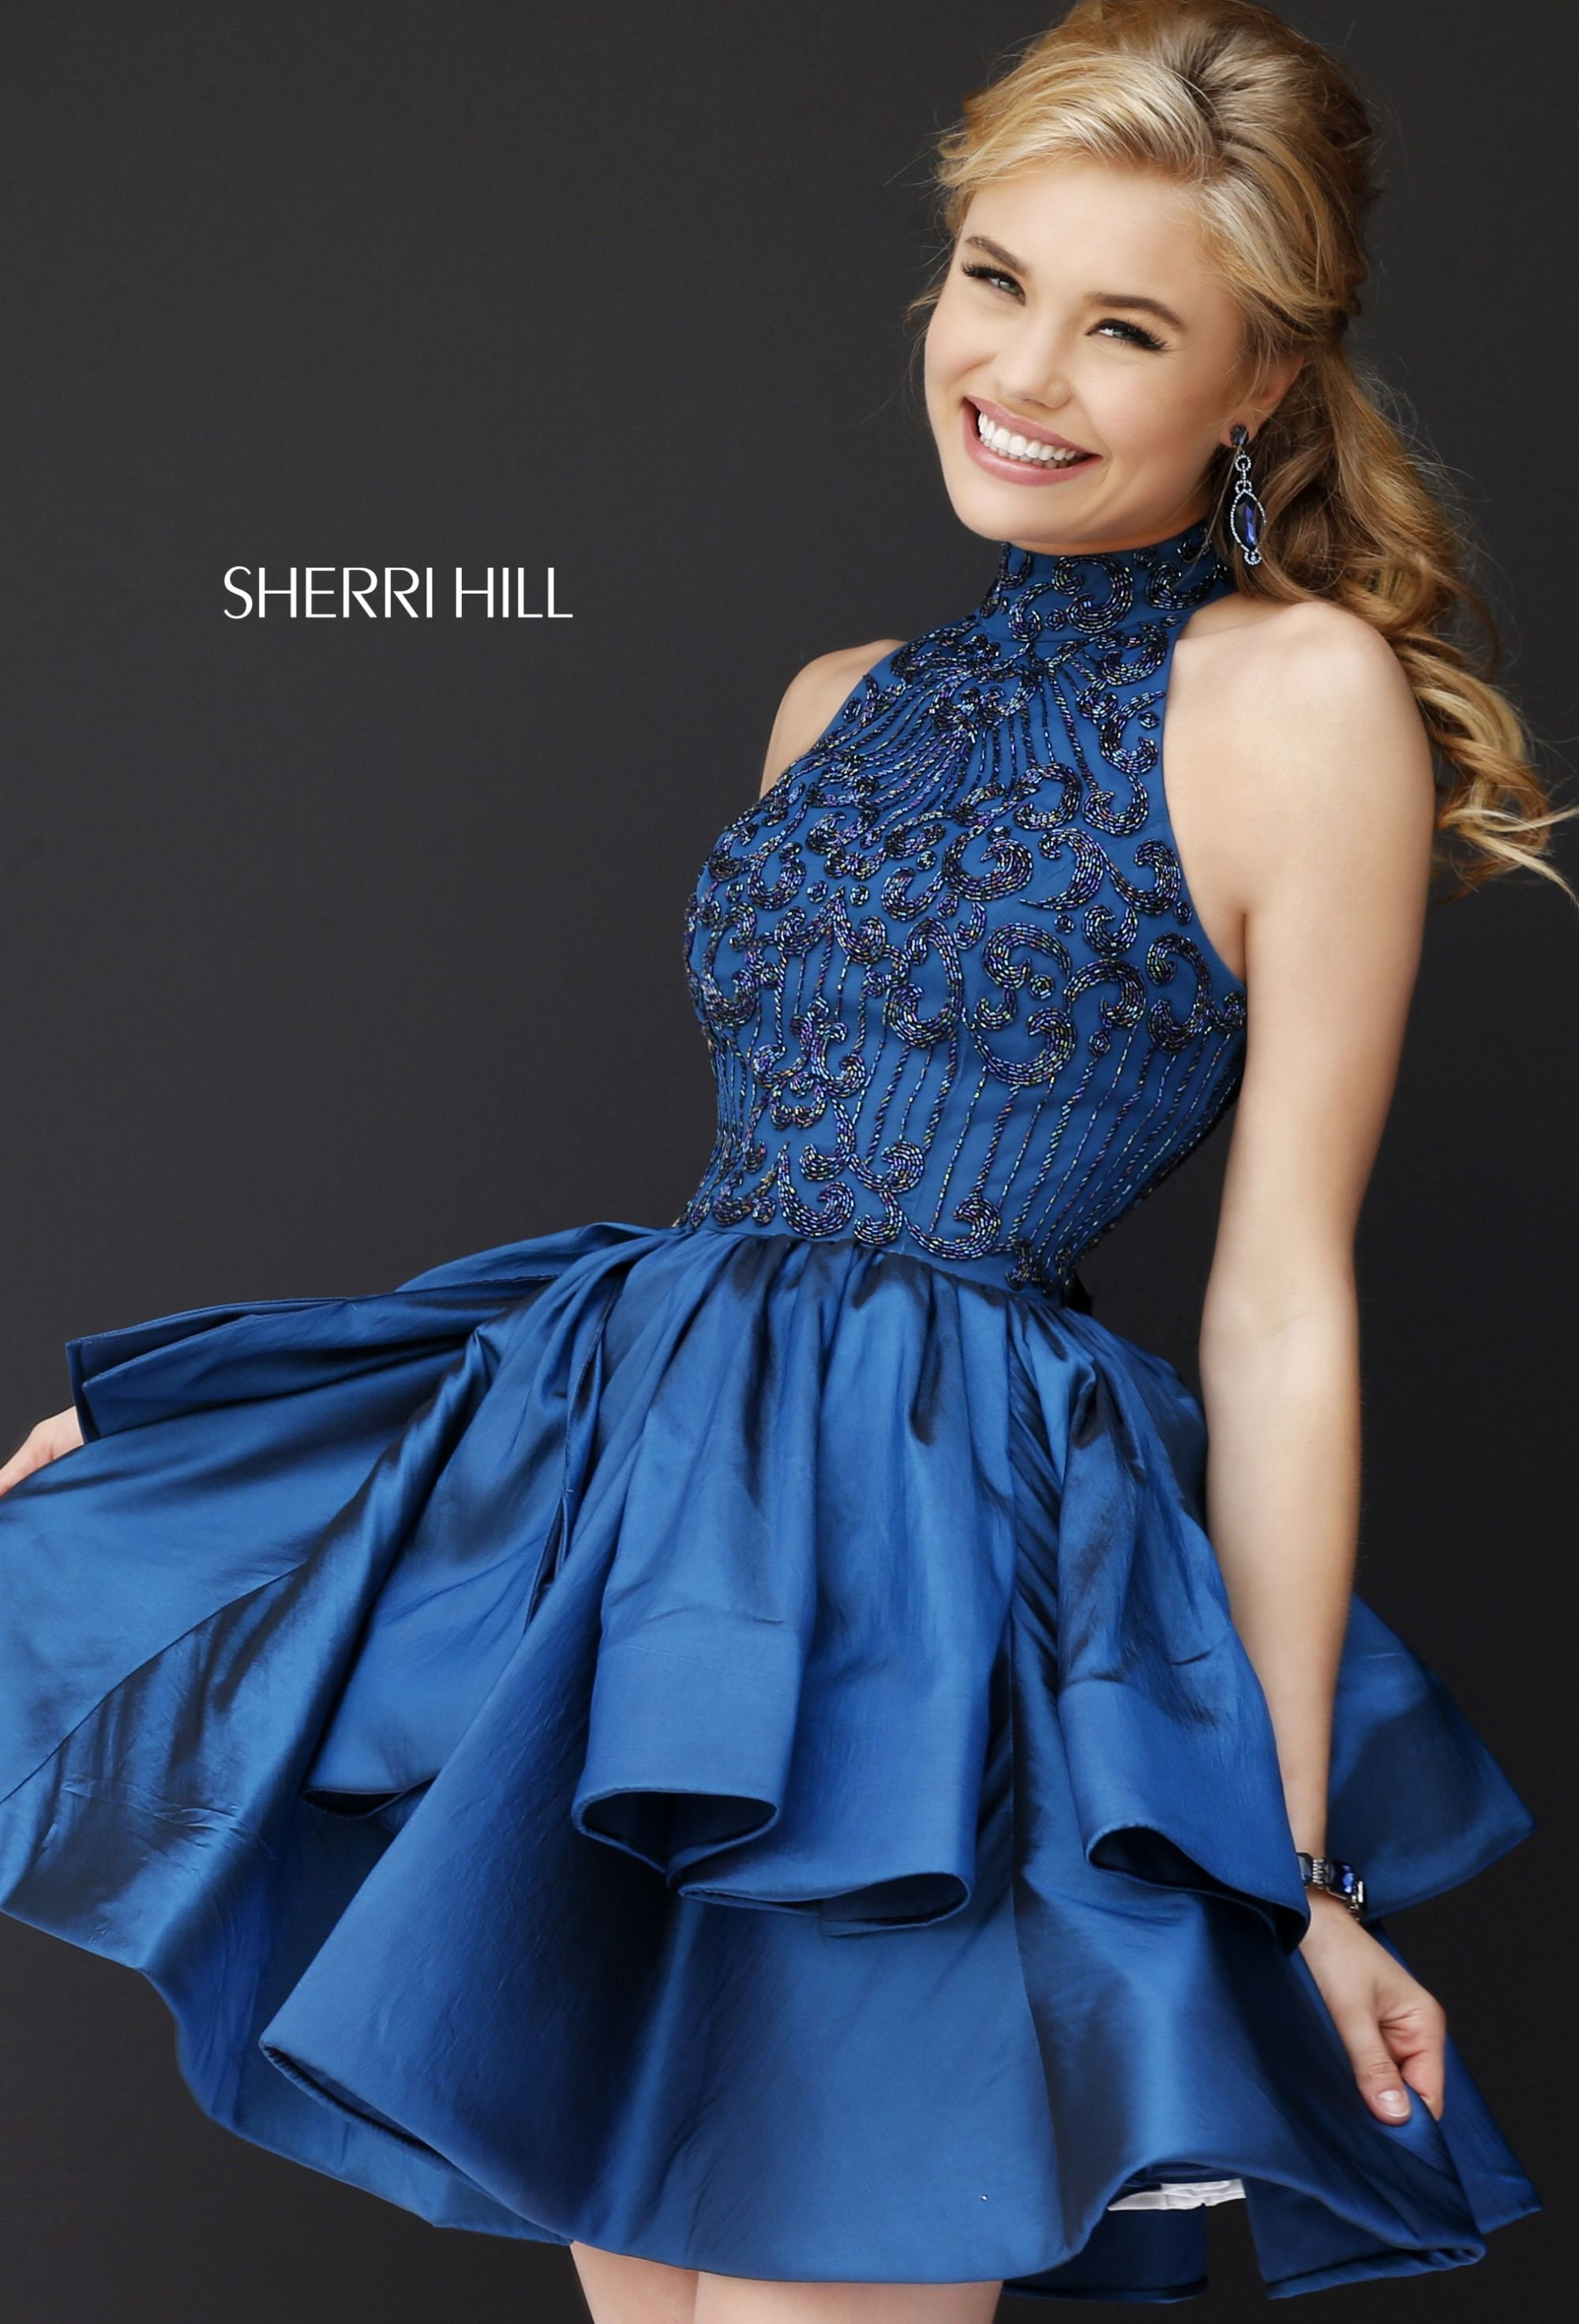 93a5f736667 Sherri Hill 32338 Navy Blue Short Dress Ypsilon Dresses Prom Pageant Evening  Gown Special Occasion Homecoming Sweethearts Black Tie Red Carpet Holiday  Party ...